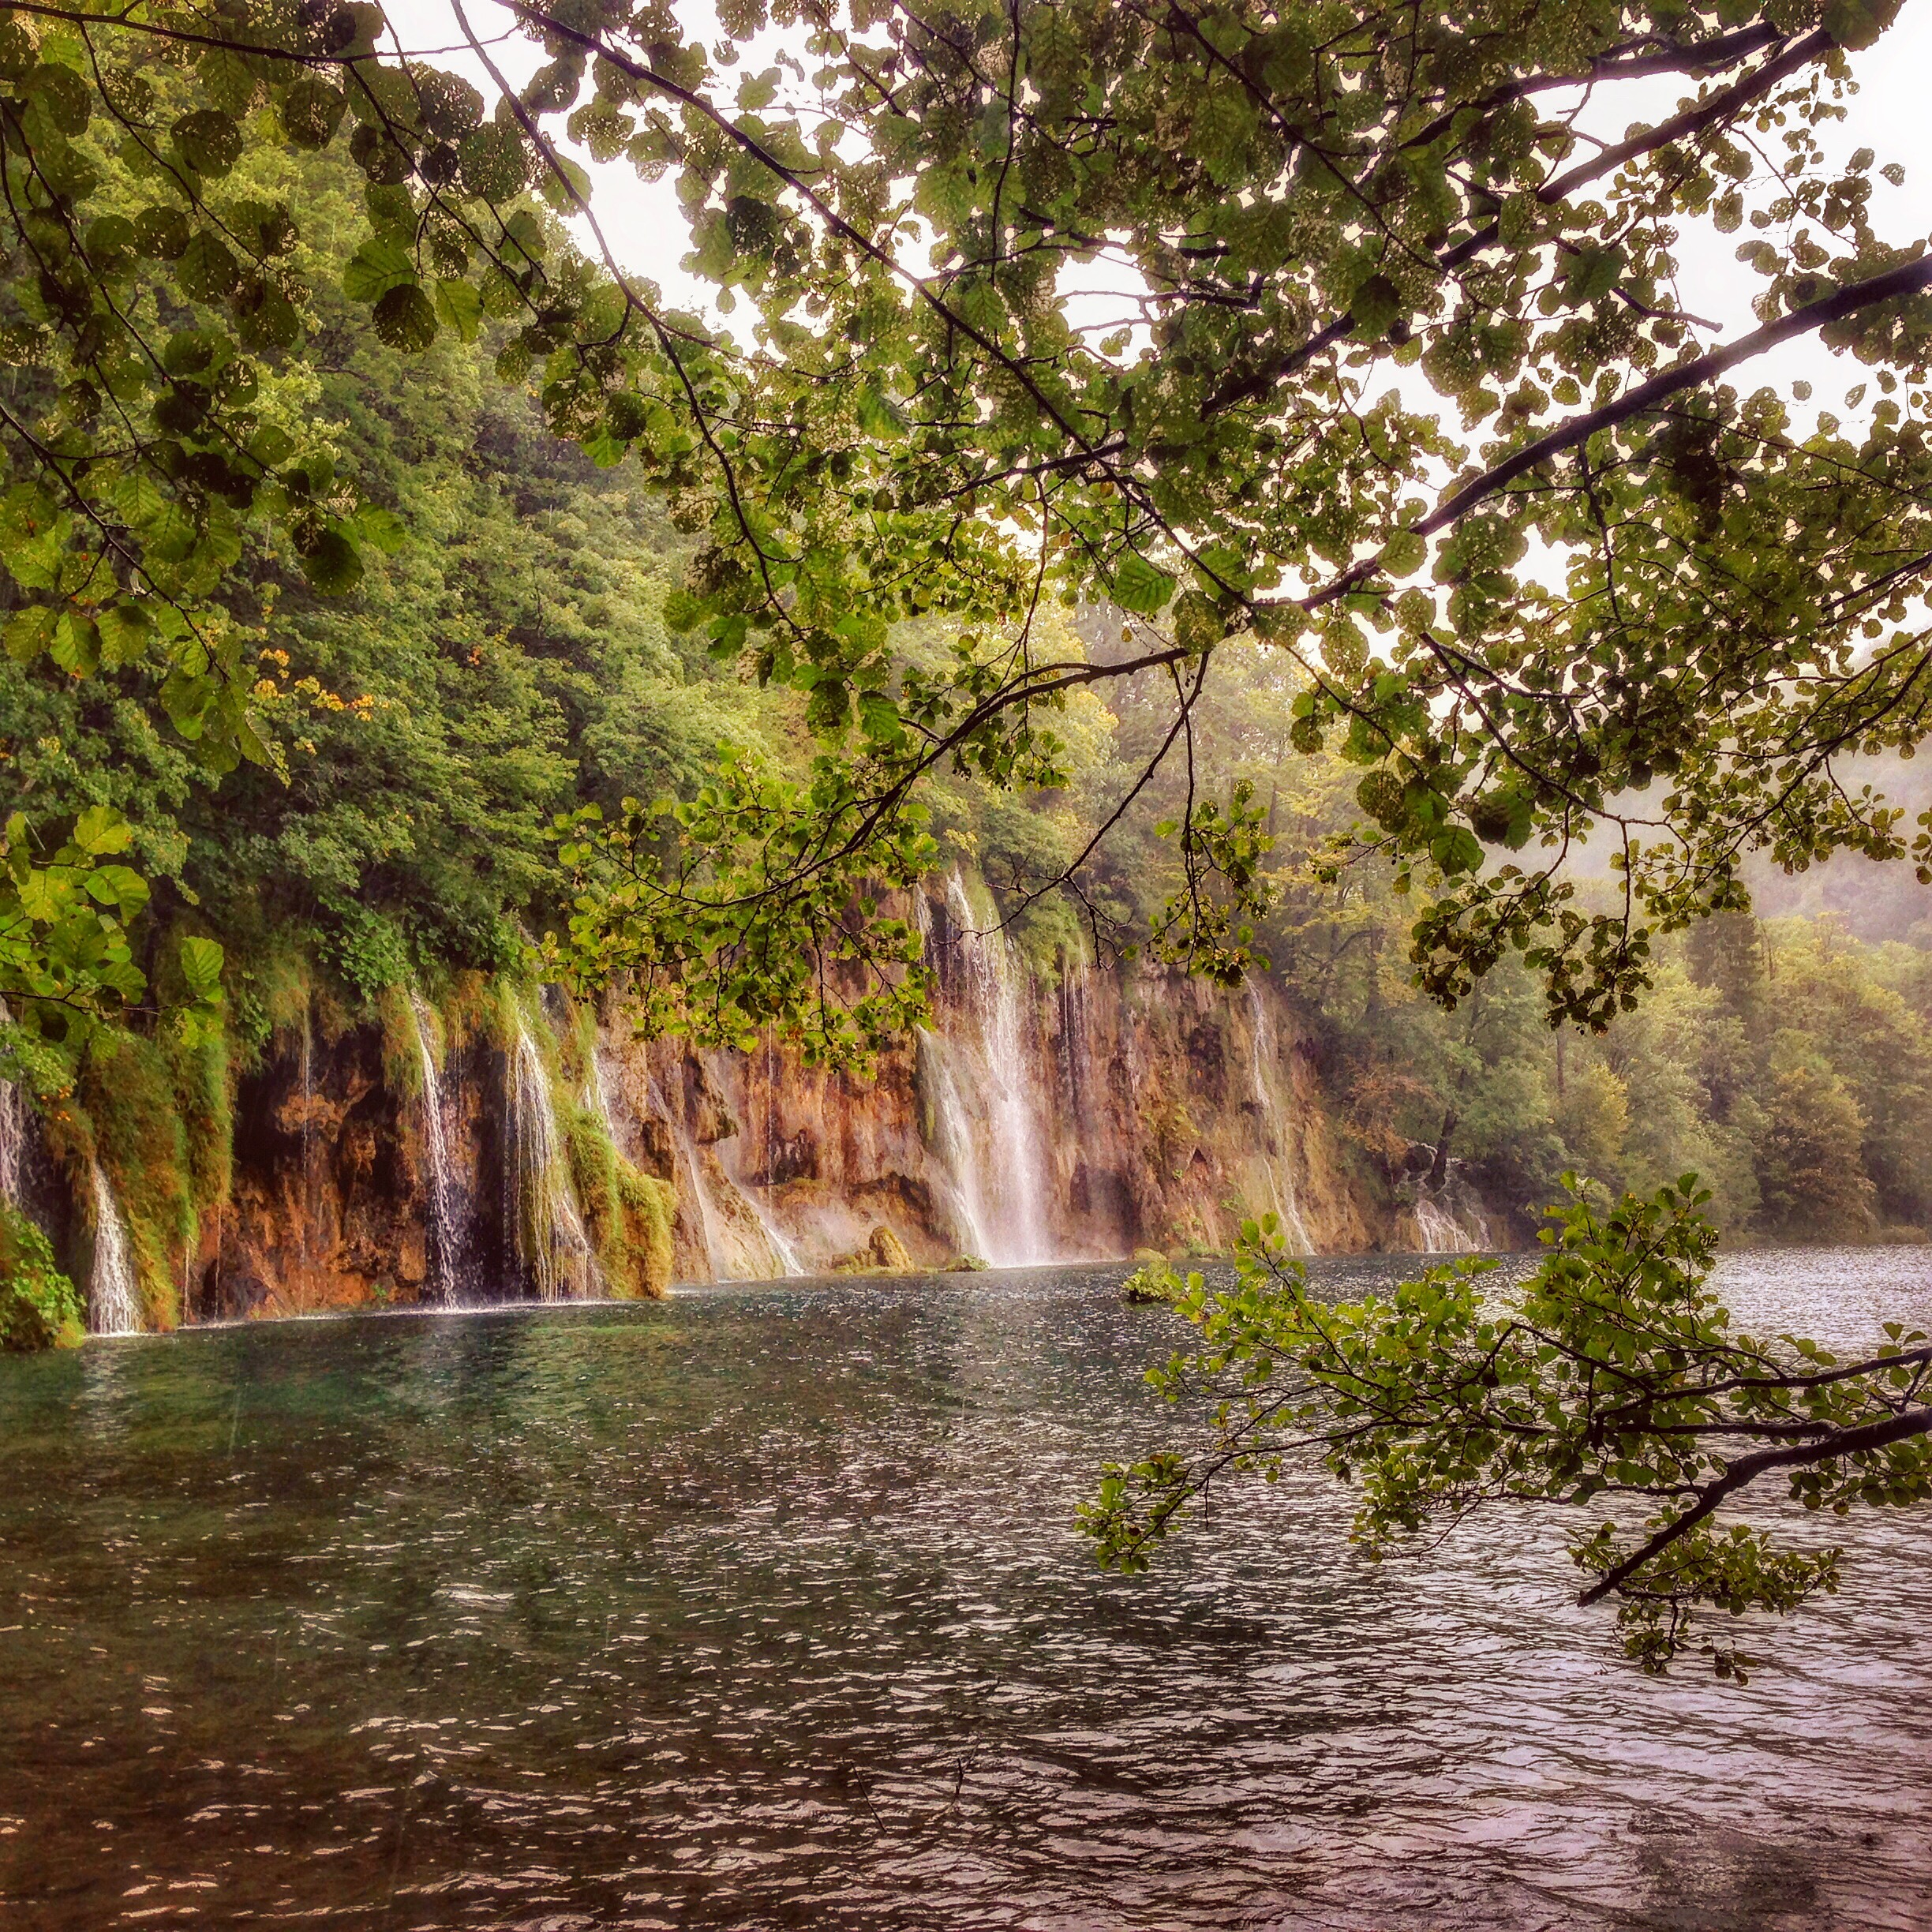 Places To Visit In Month Of December: Visiting Croatia In September